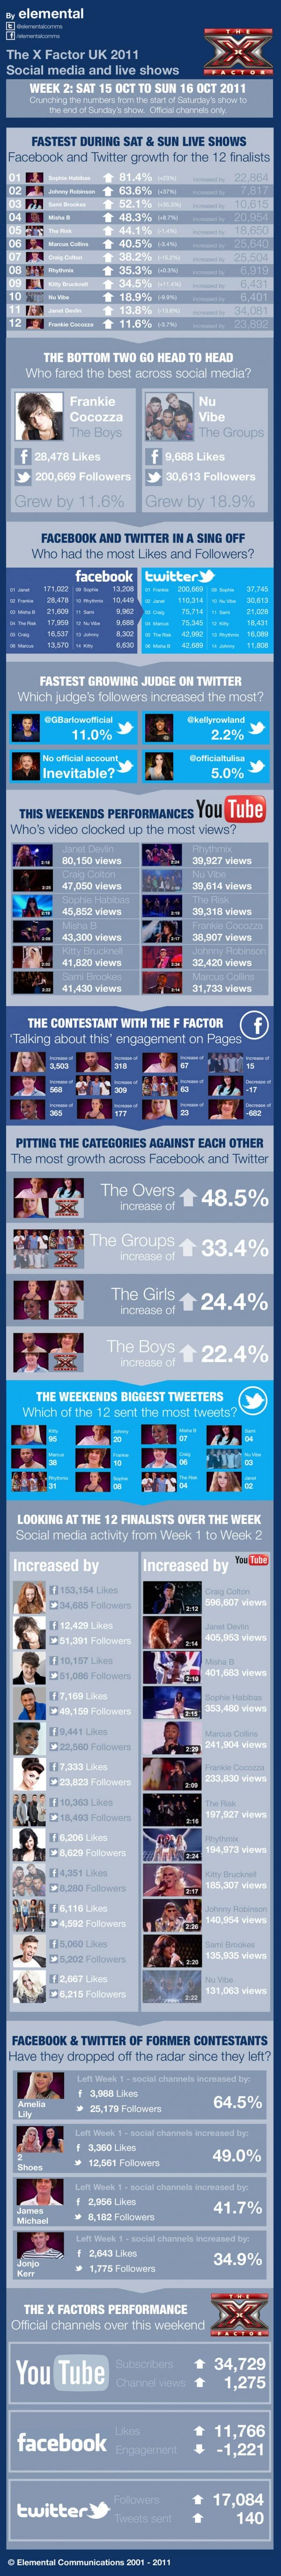 The X Factor Social media and the live shows infographic